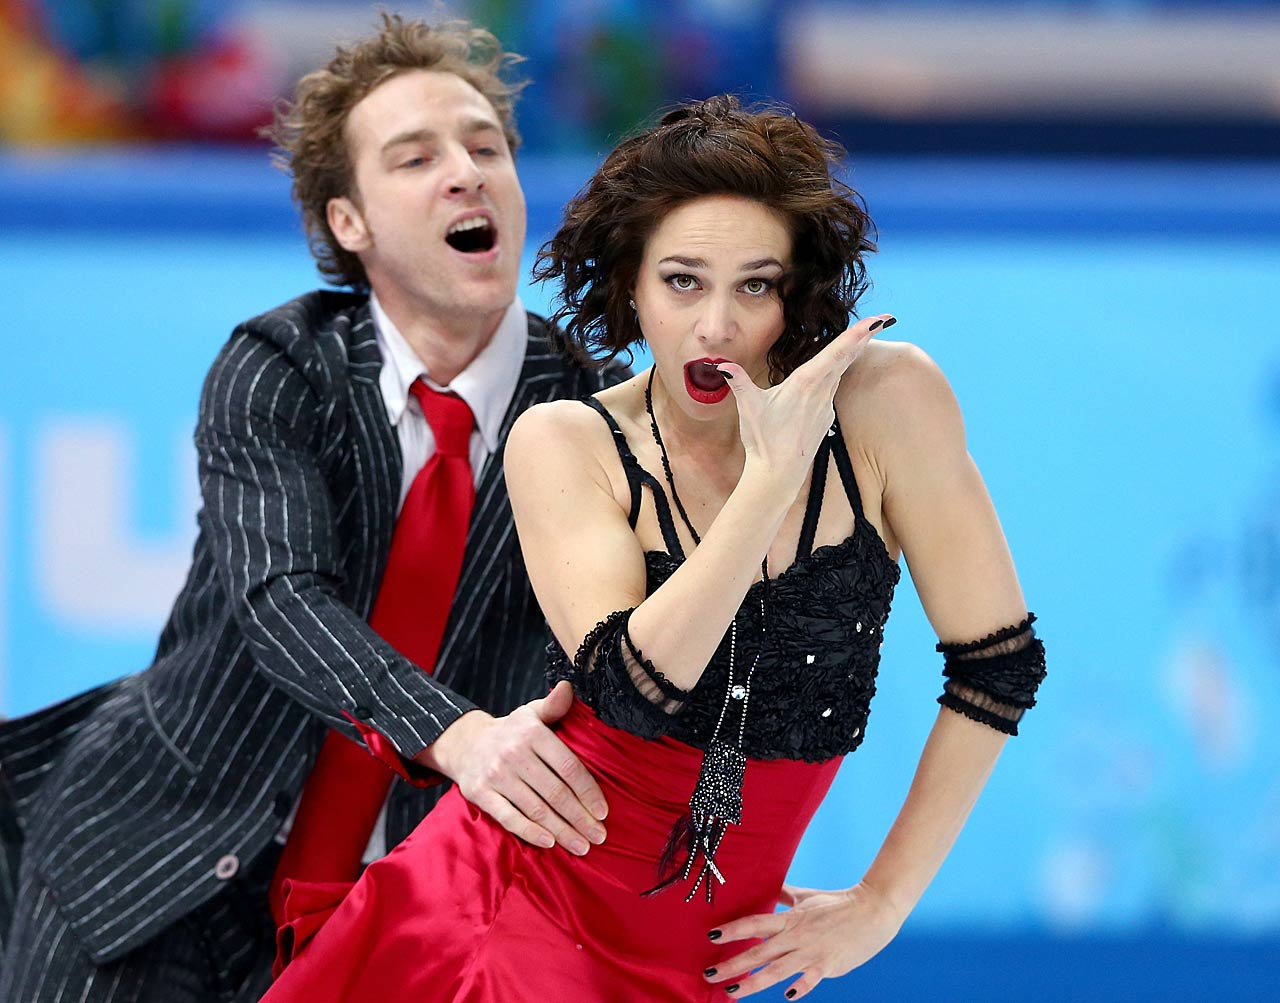 Nathalie Pechalat and Fabian Bourzat of France compete in the Figure Skating Team Ice Dance - Short Dance.